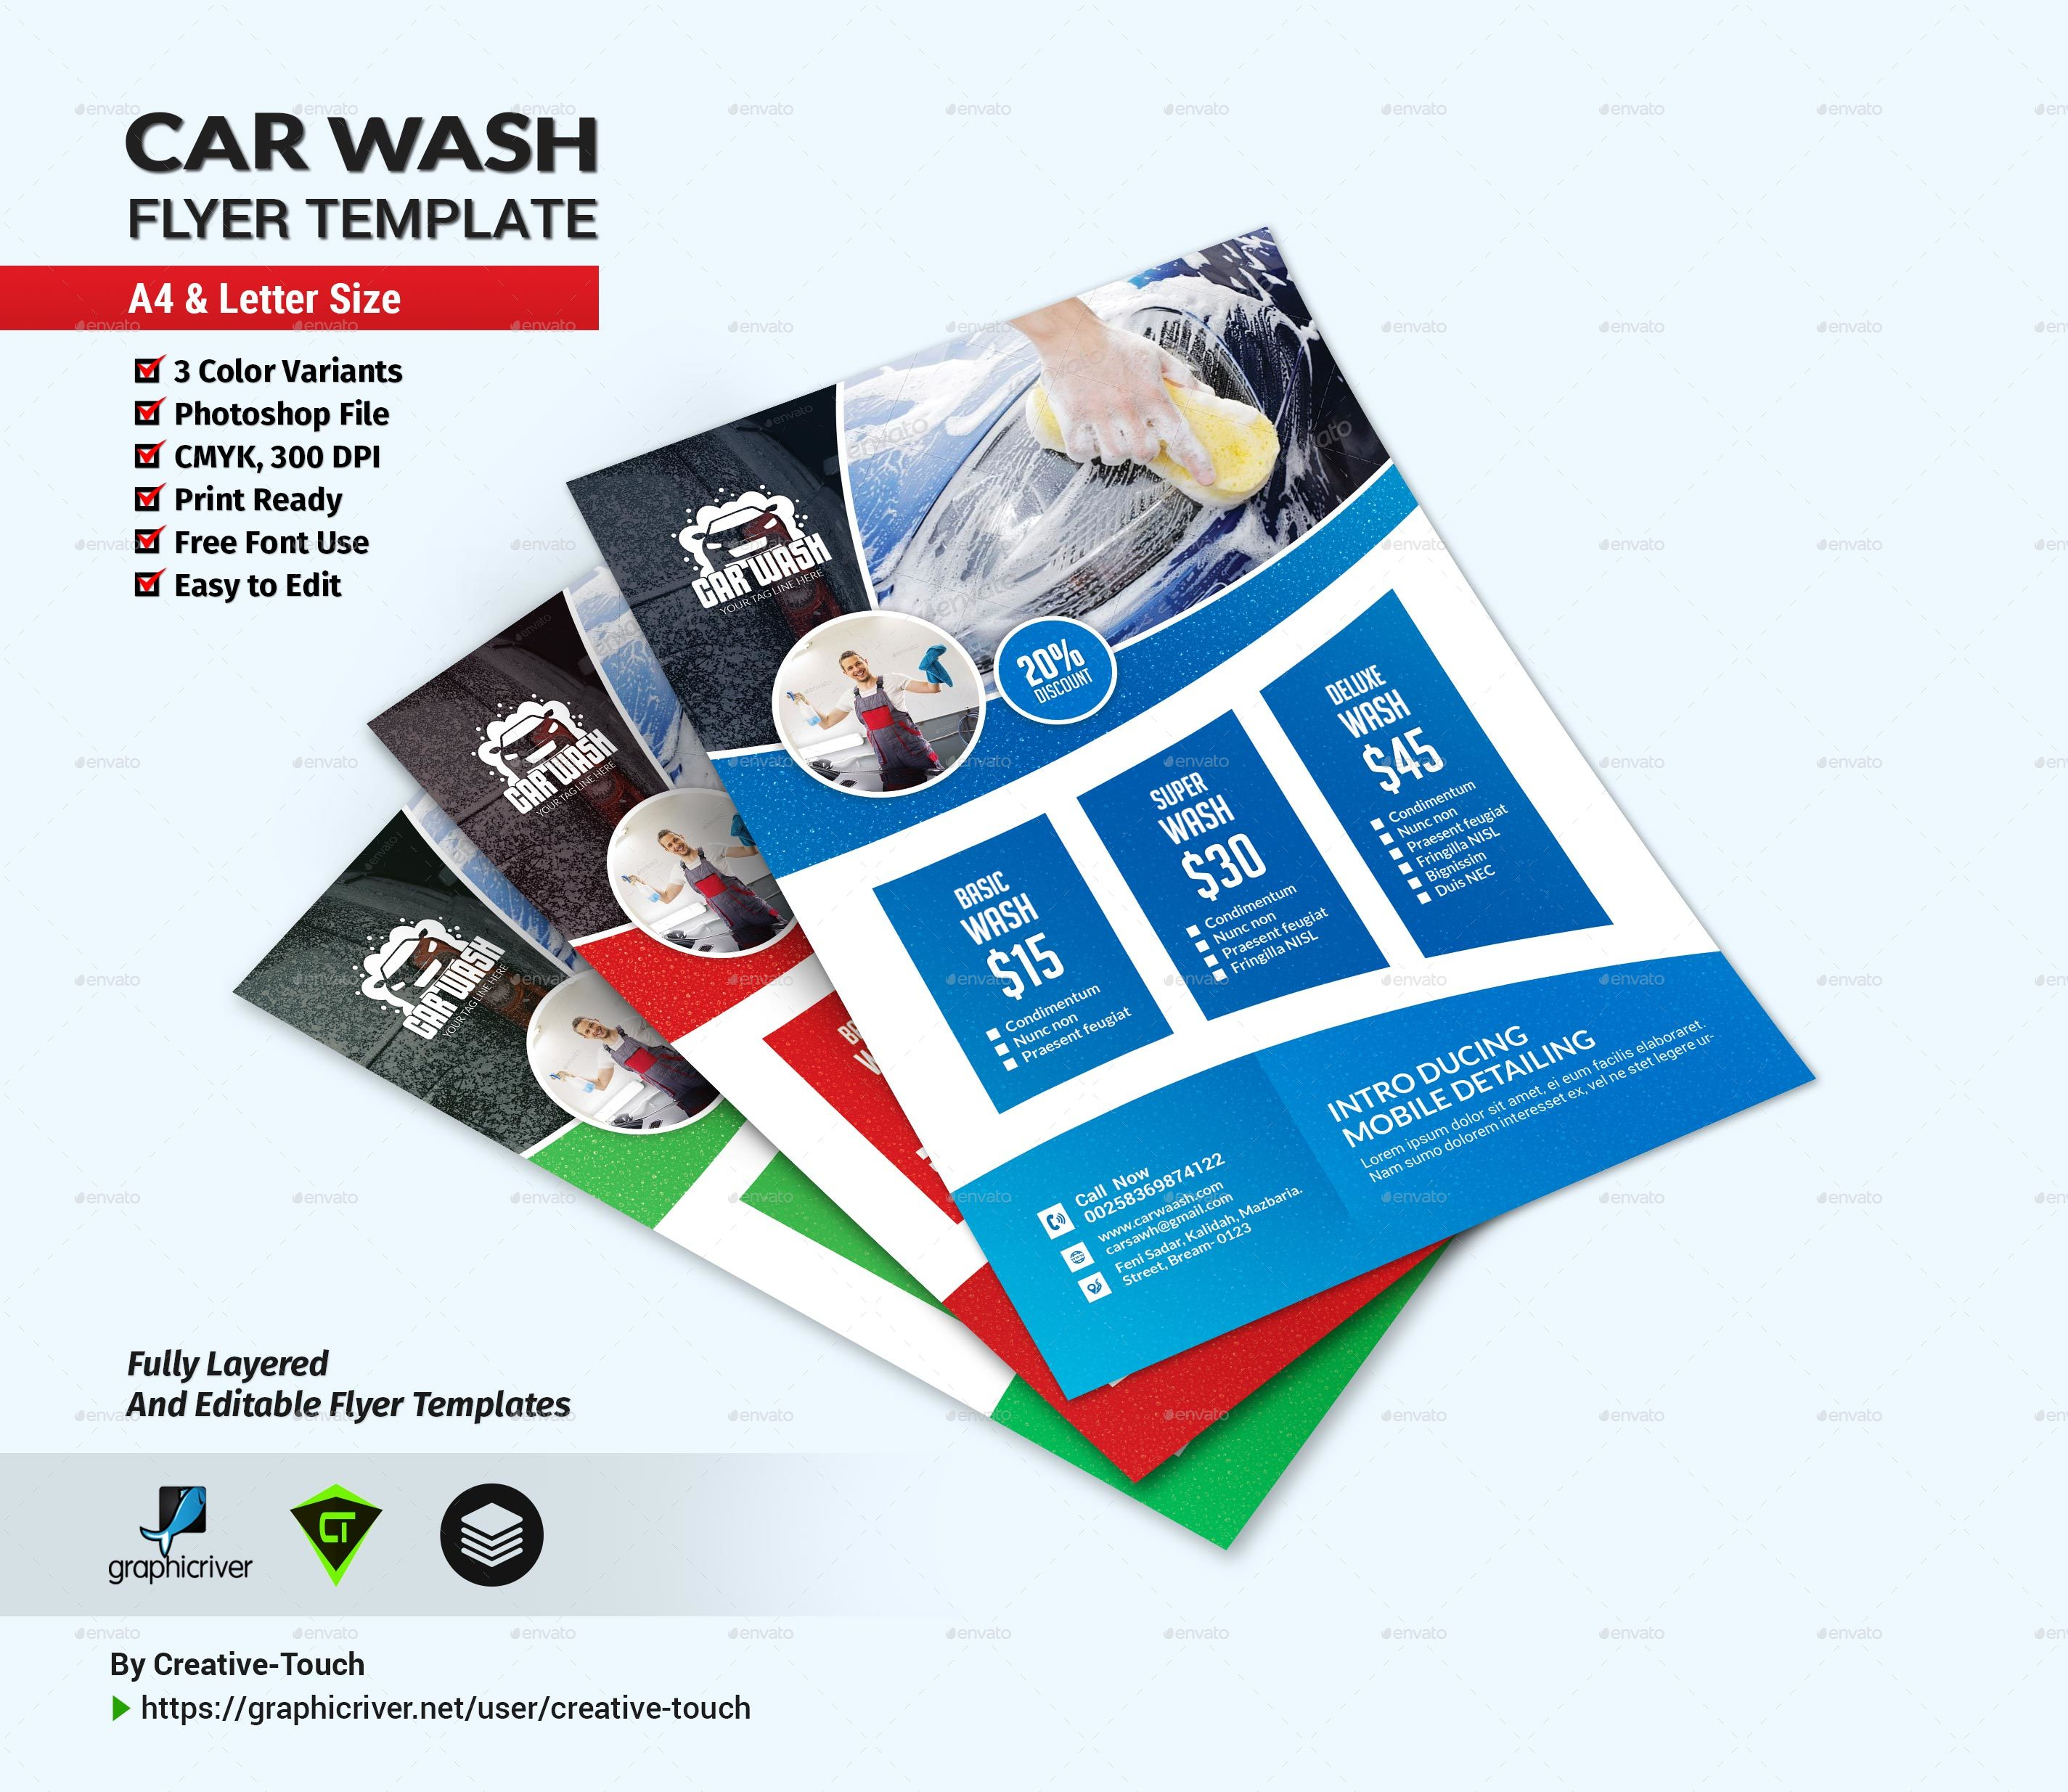 Car Wash Flyer Template By Creative Touch Graphicriver